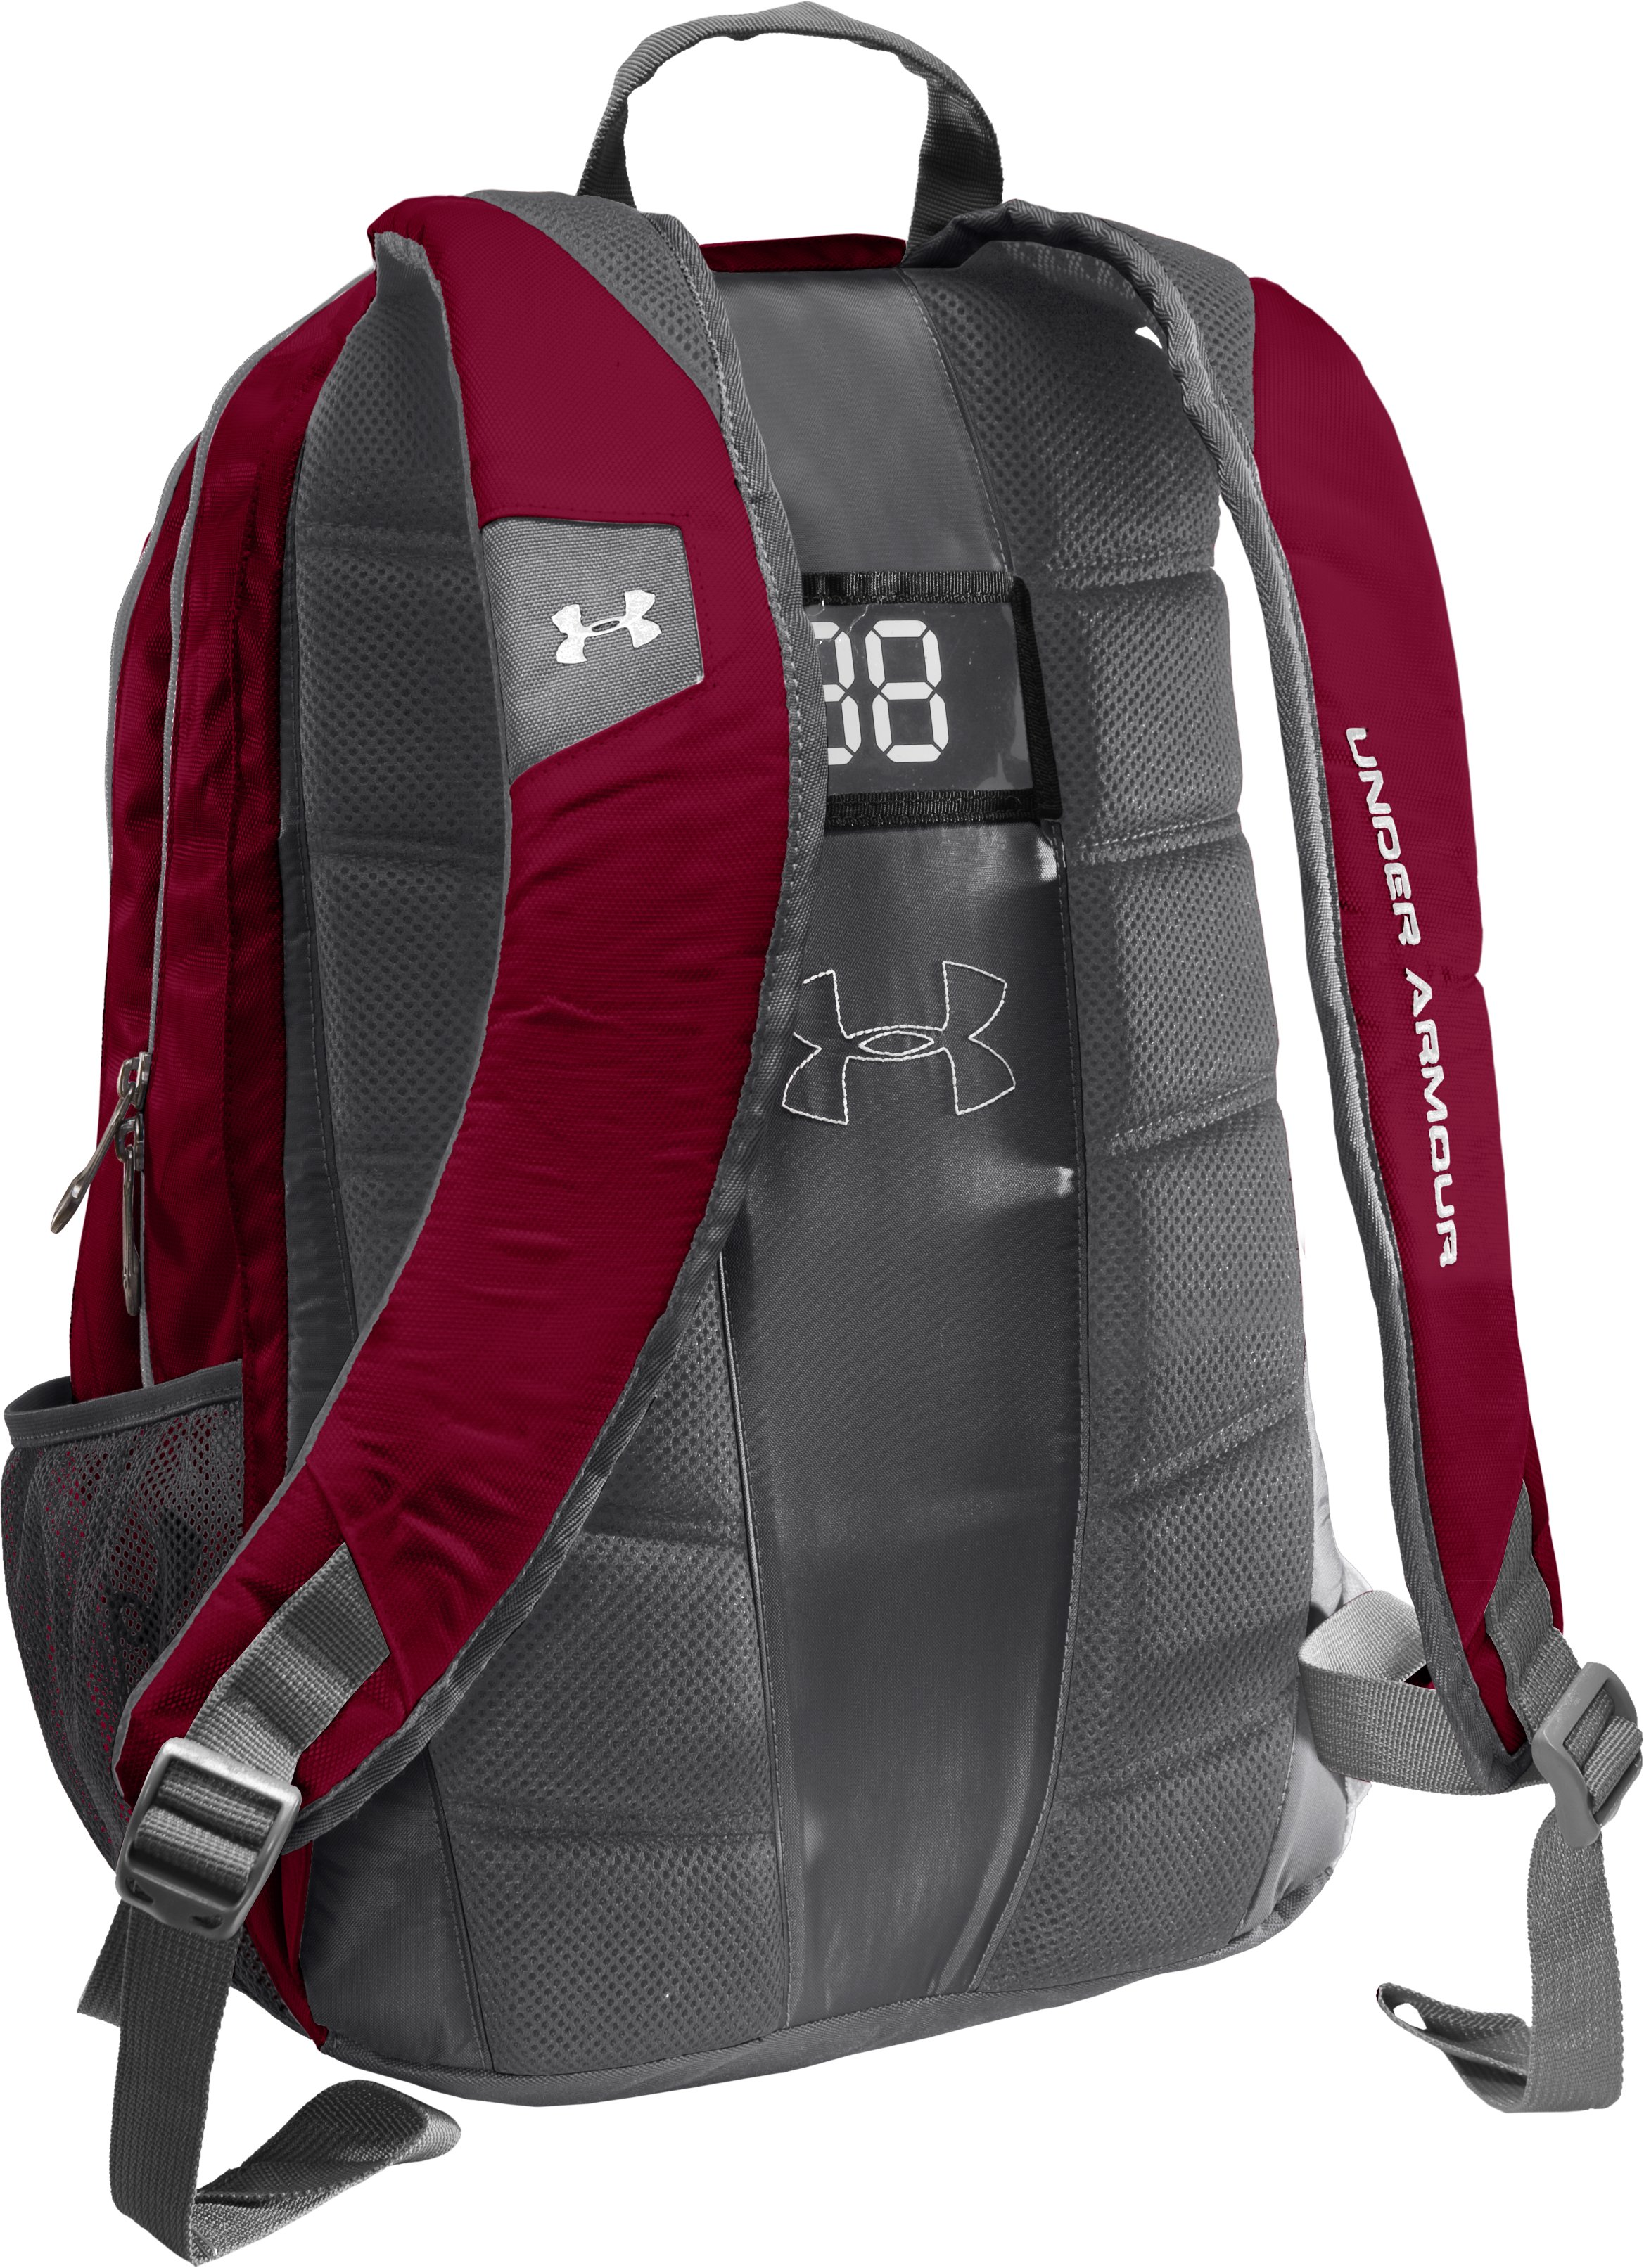 PTH® Victory Backpack, Cardinal, undefined